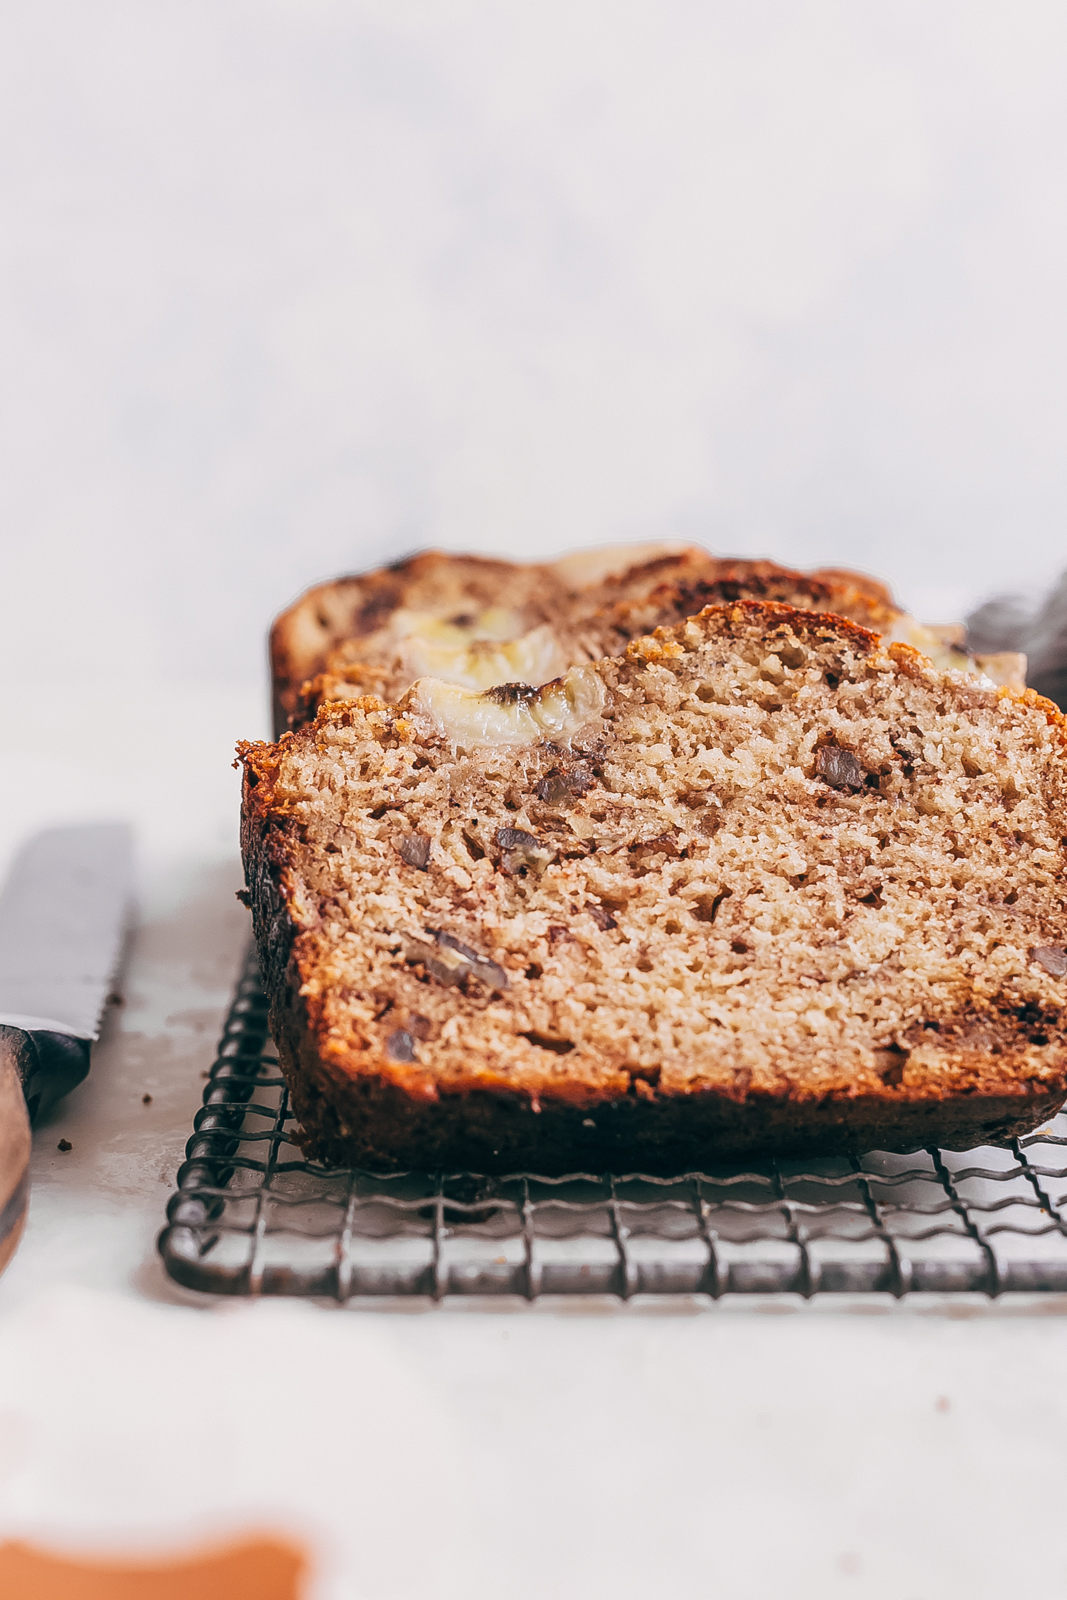 slices of banana bread on trivet with a bread knife on white marble